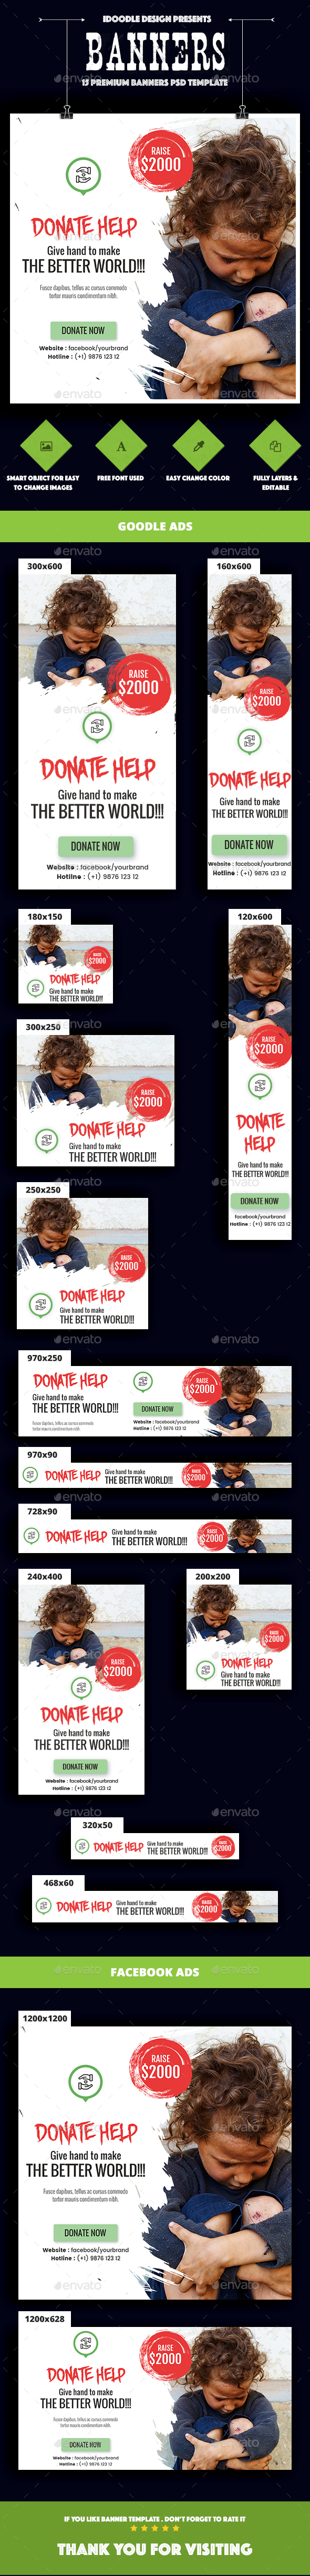 Nonprofit - NGO, Charity/Fundraising Banner Ads - Banners & Ads Web Elements